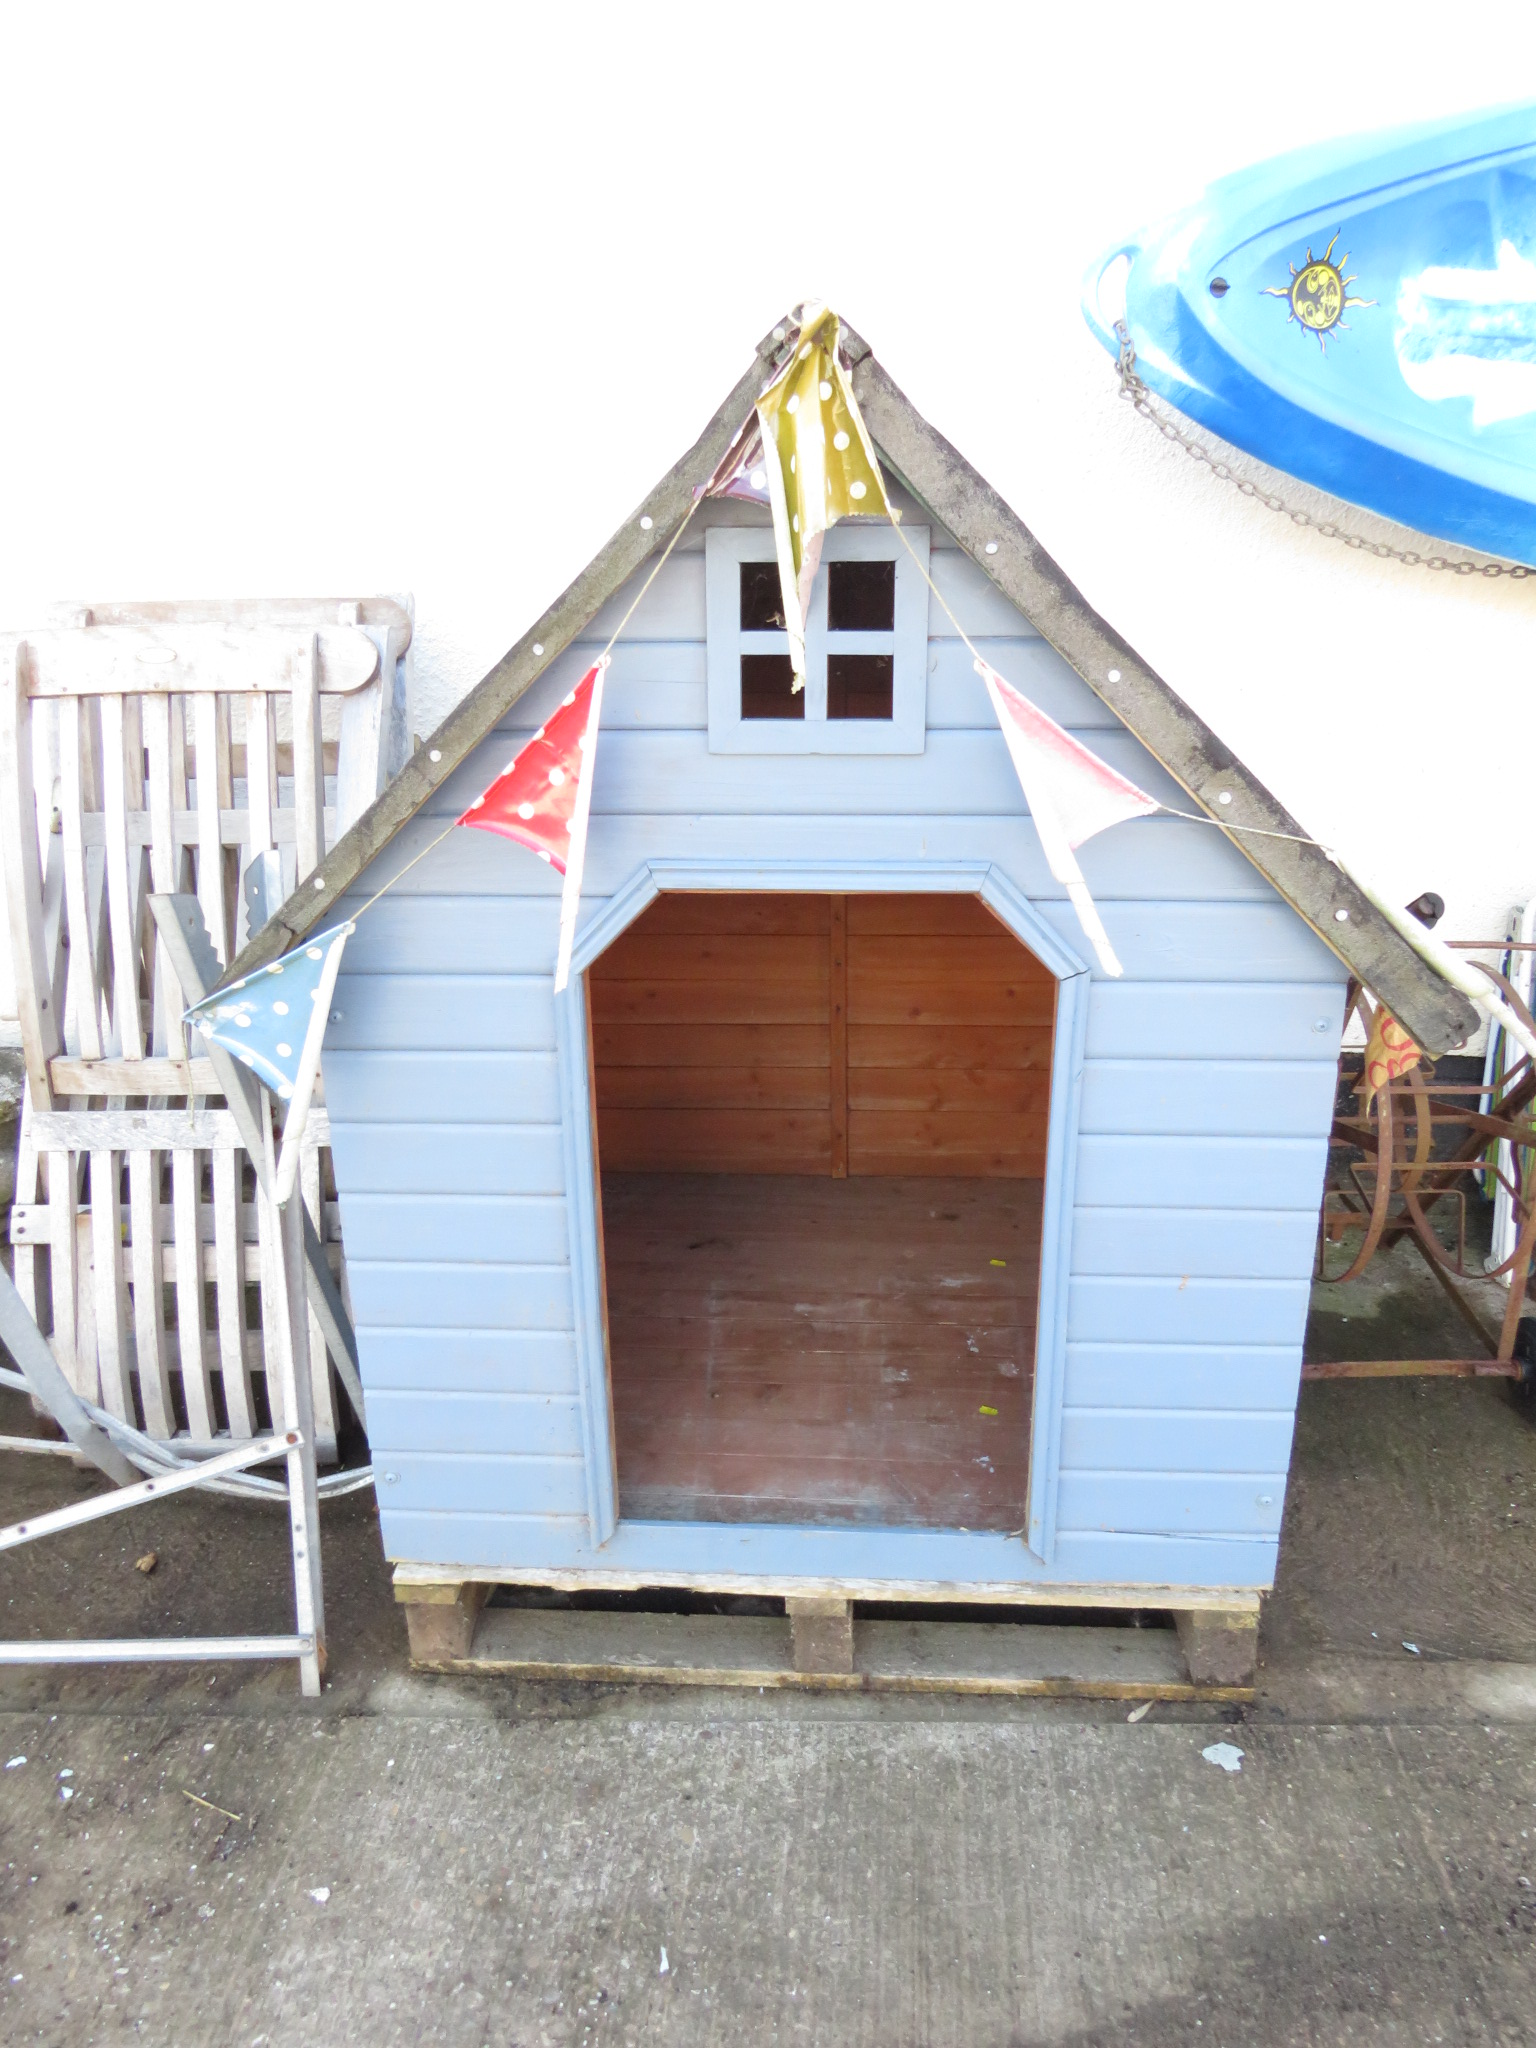 Lot 11 - WOODEN OUTDOOR CHILD'S PLAYHOUSE